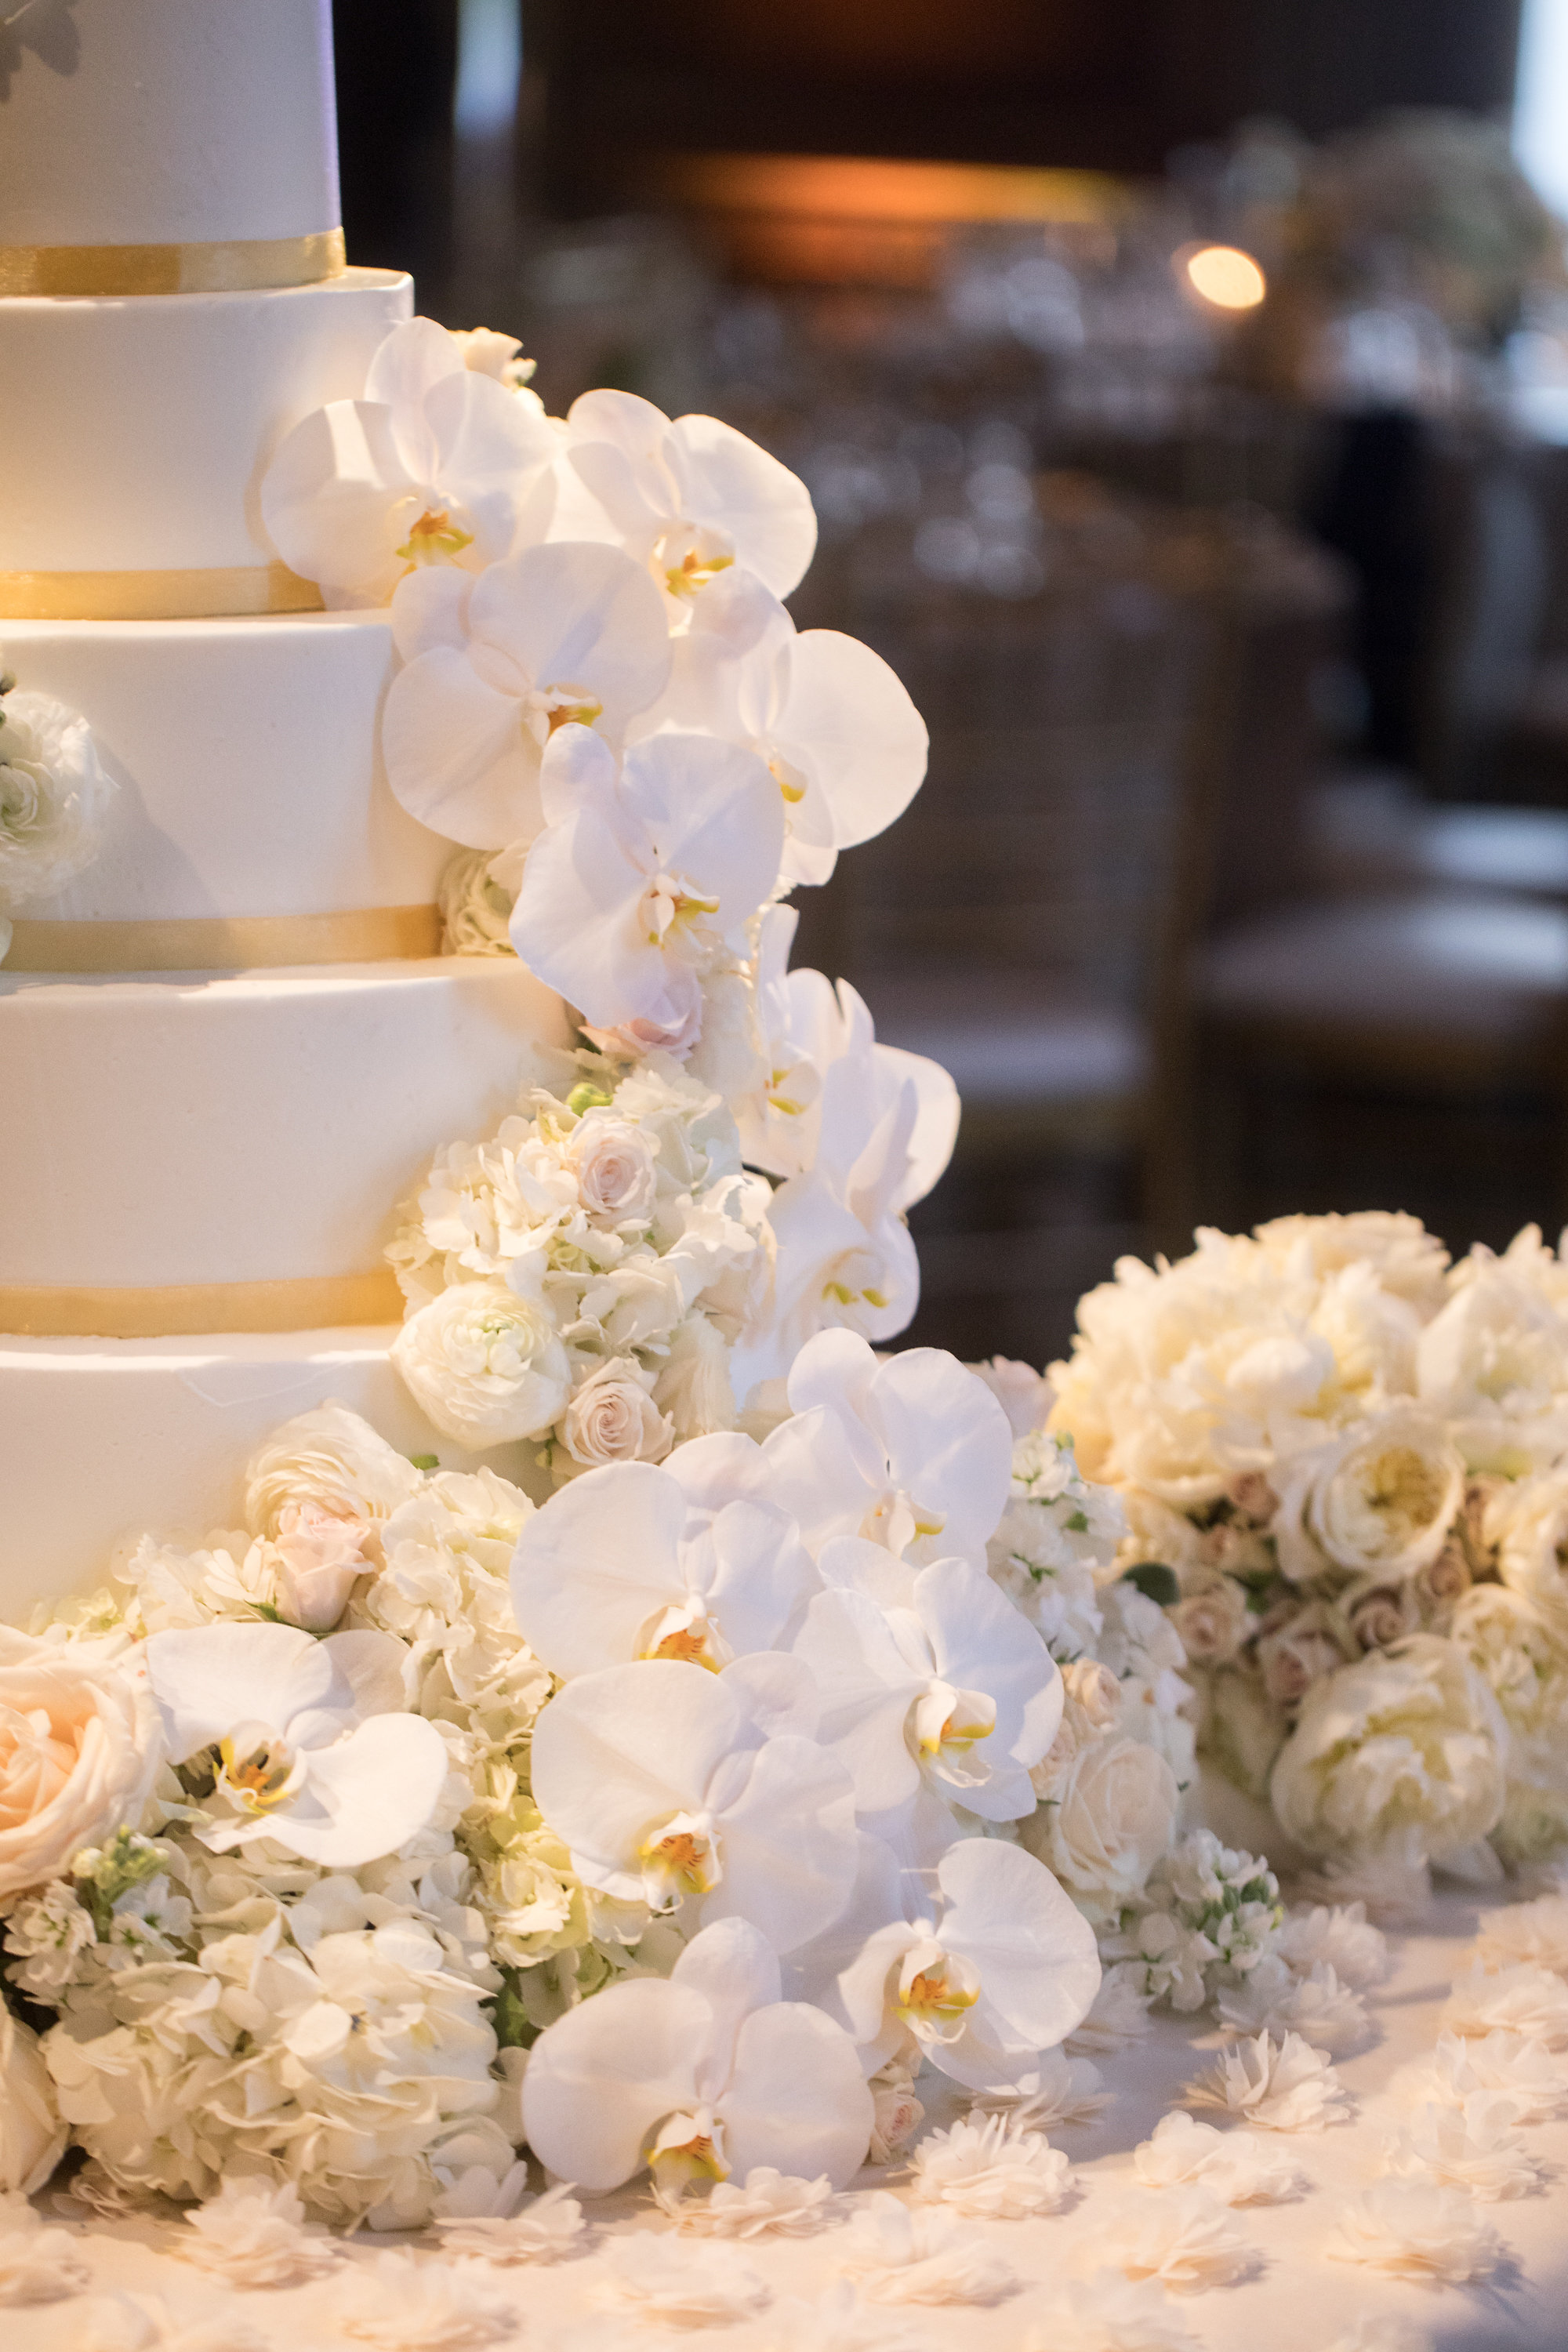 Cake Details - Dallas, Tx - Spring Wedding - Julian Leaver Events